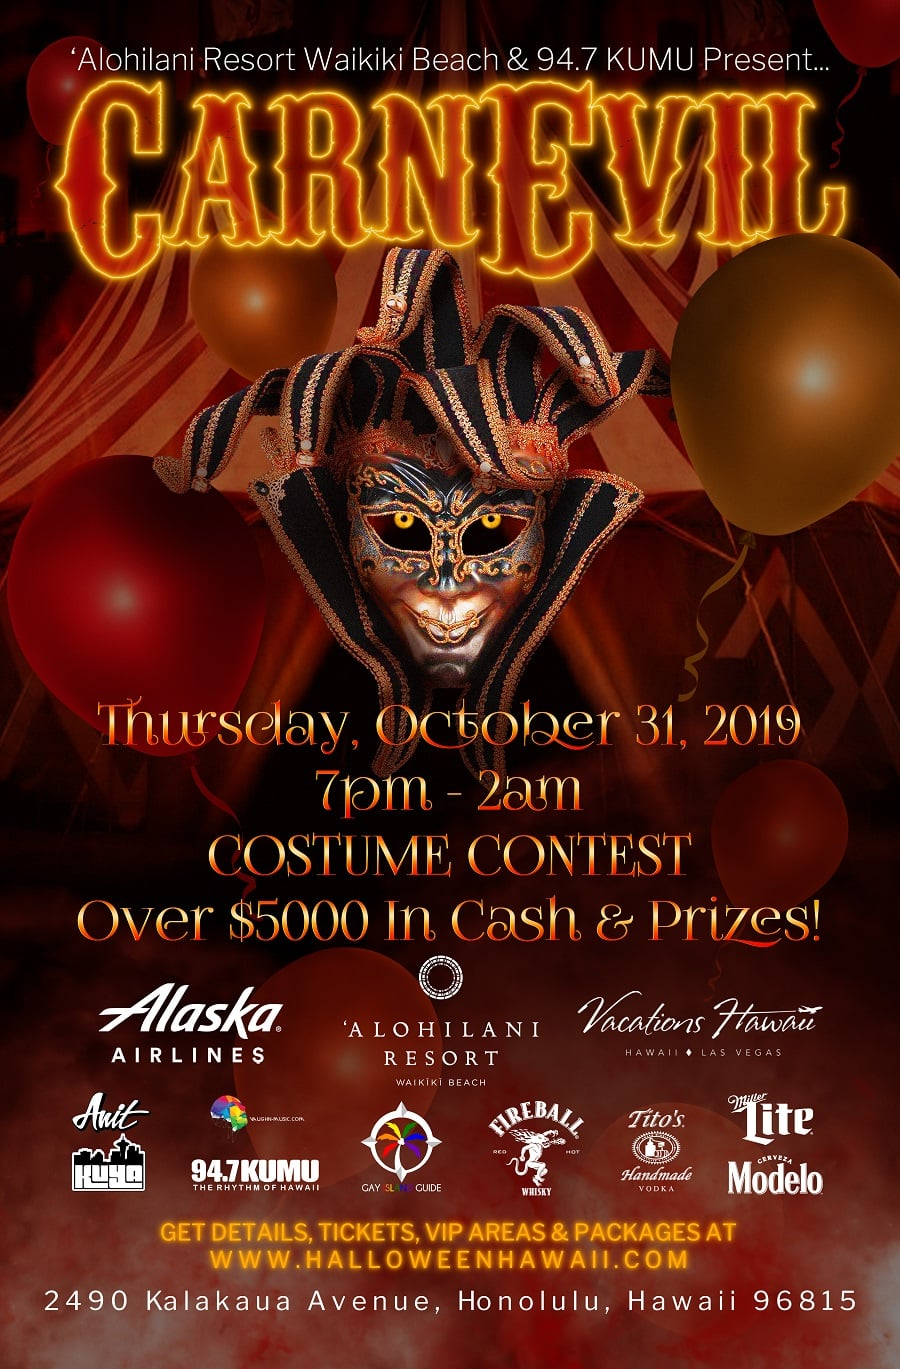 Halloween Waikiki 2020 Waikiki's Largest Halloween Party and Costume Contest   ʻAlohilani